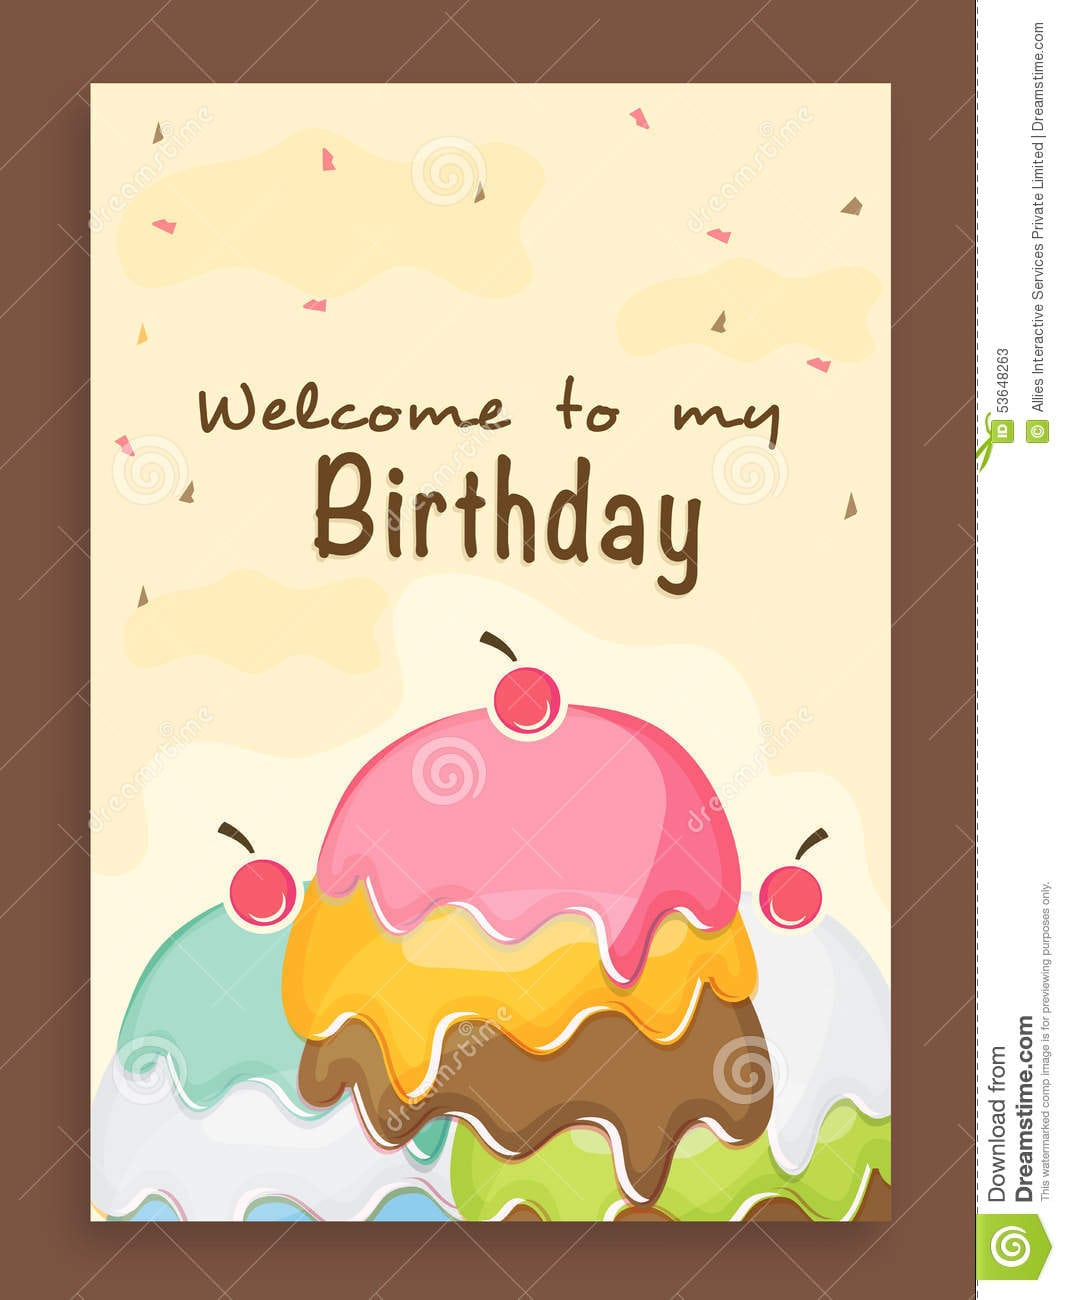 Invitation Card Design For Birthday Party  Stock Photo